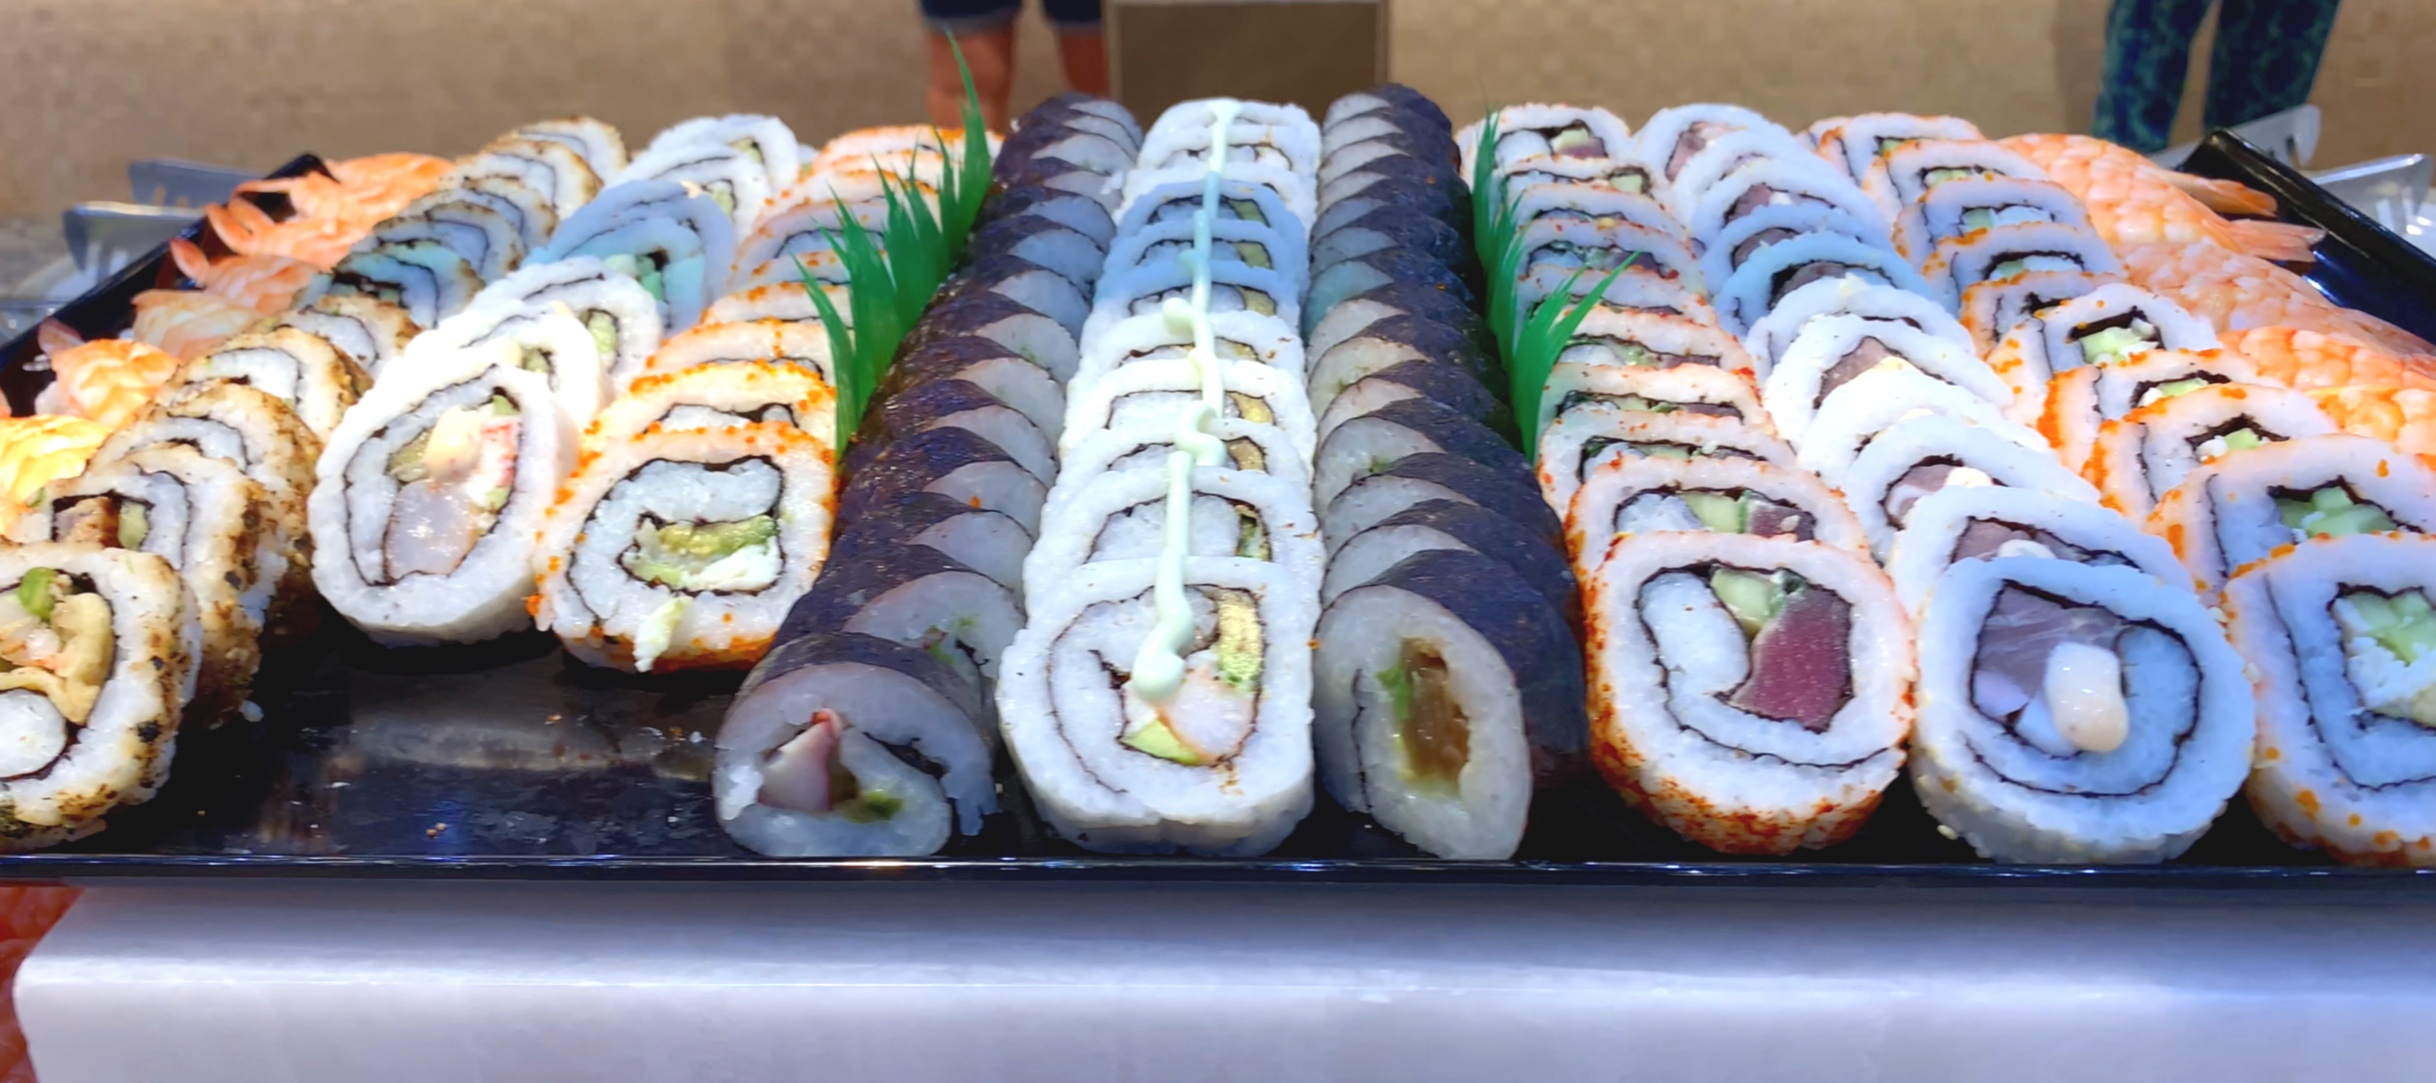 Lunchtime sushi.